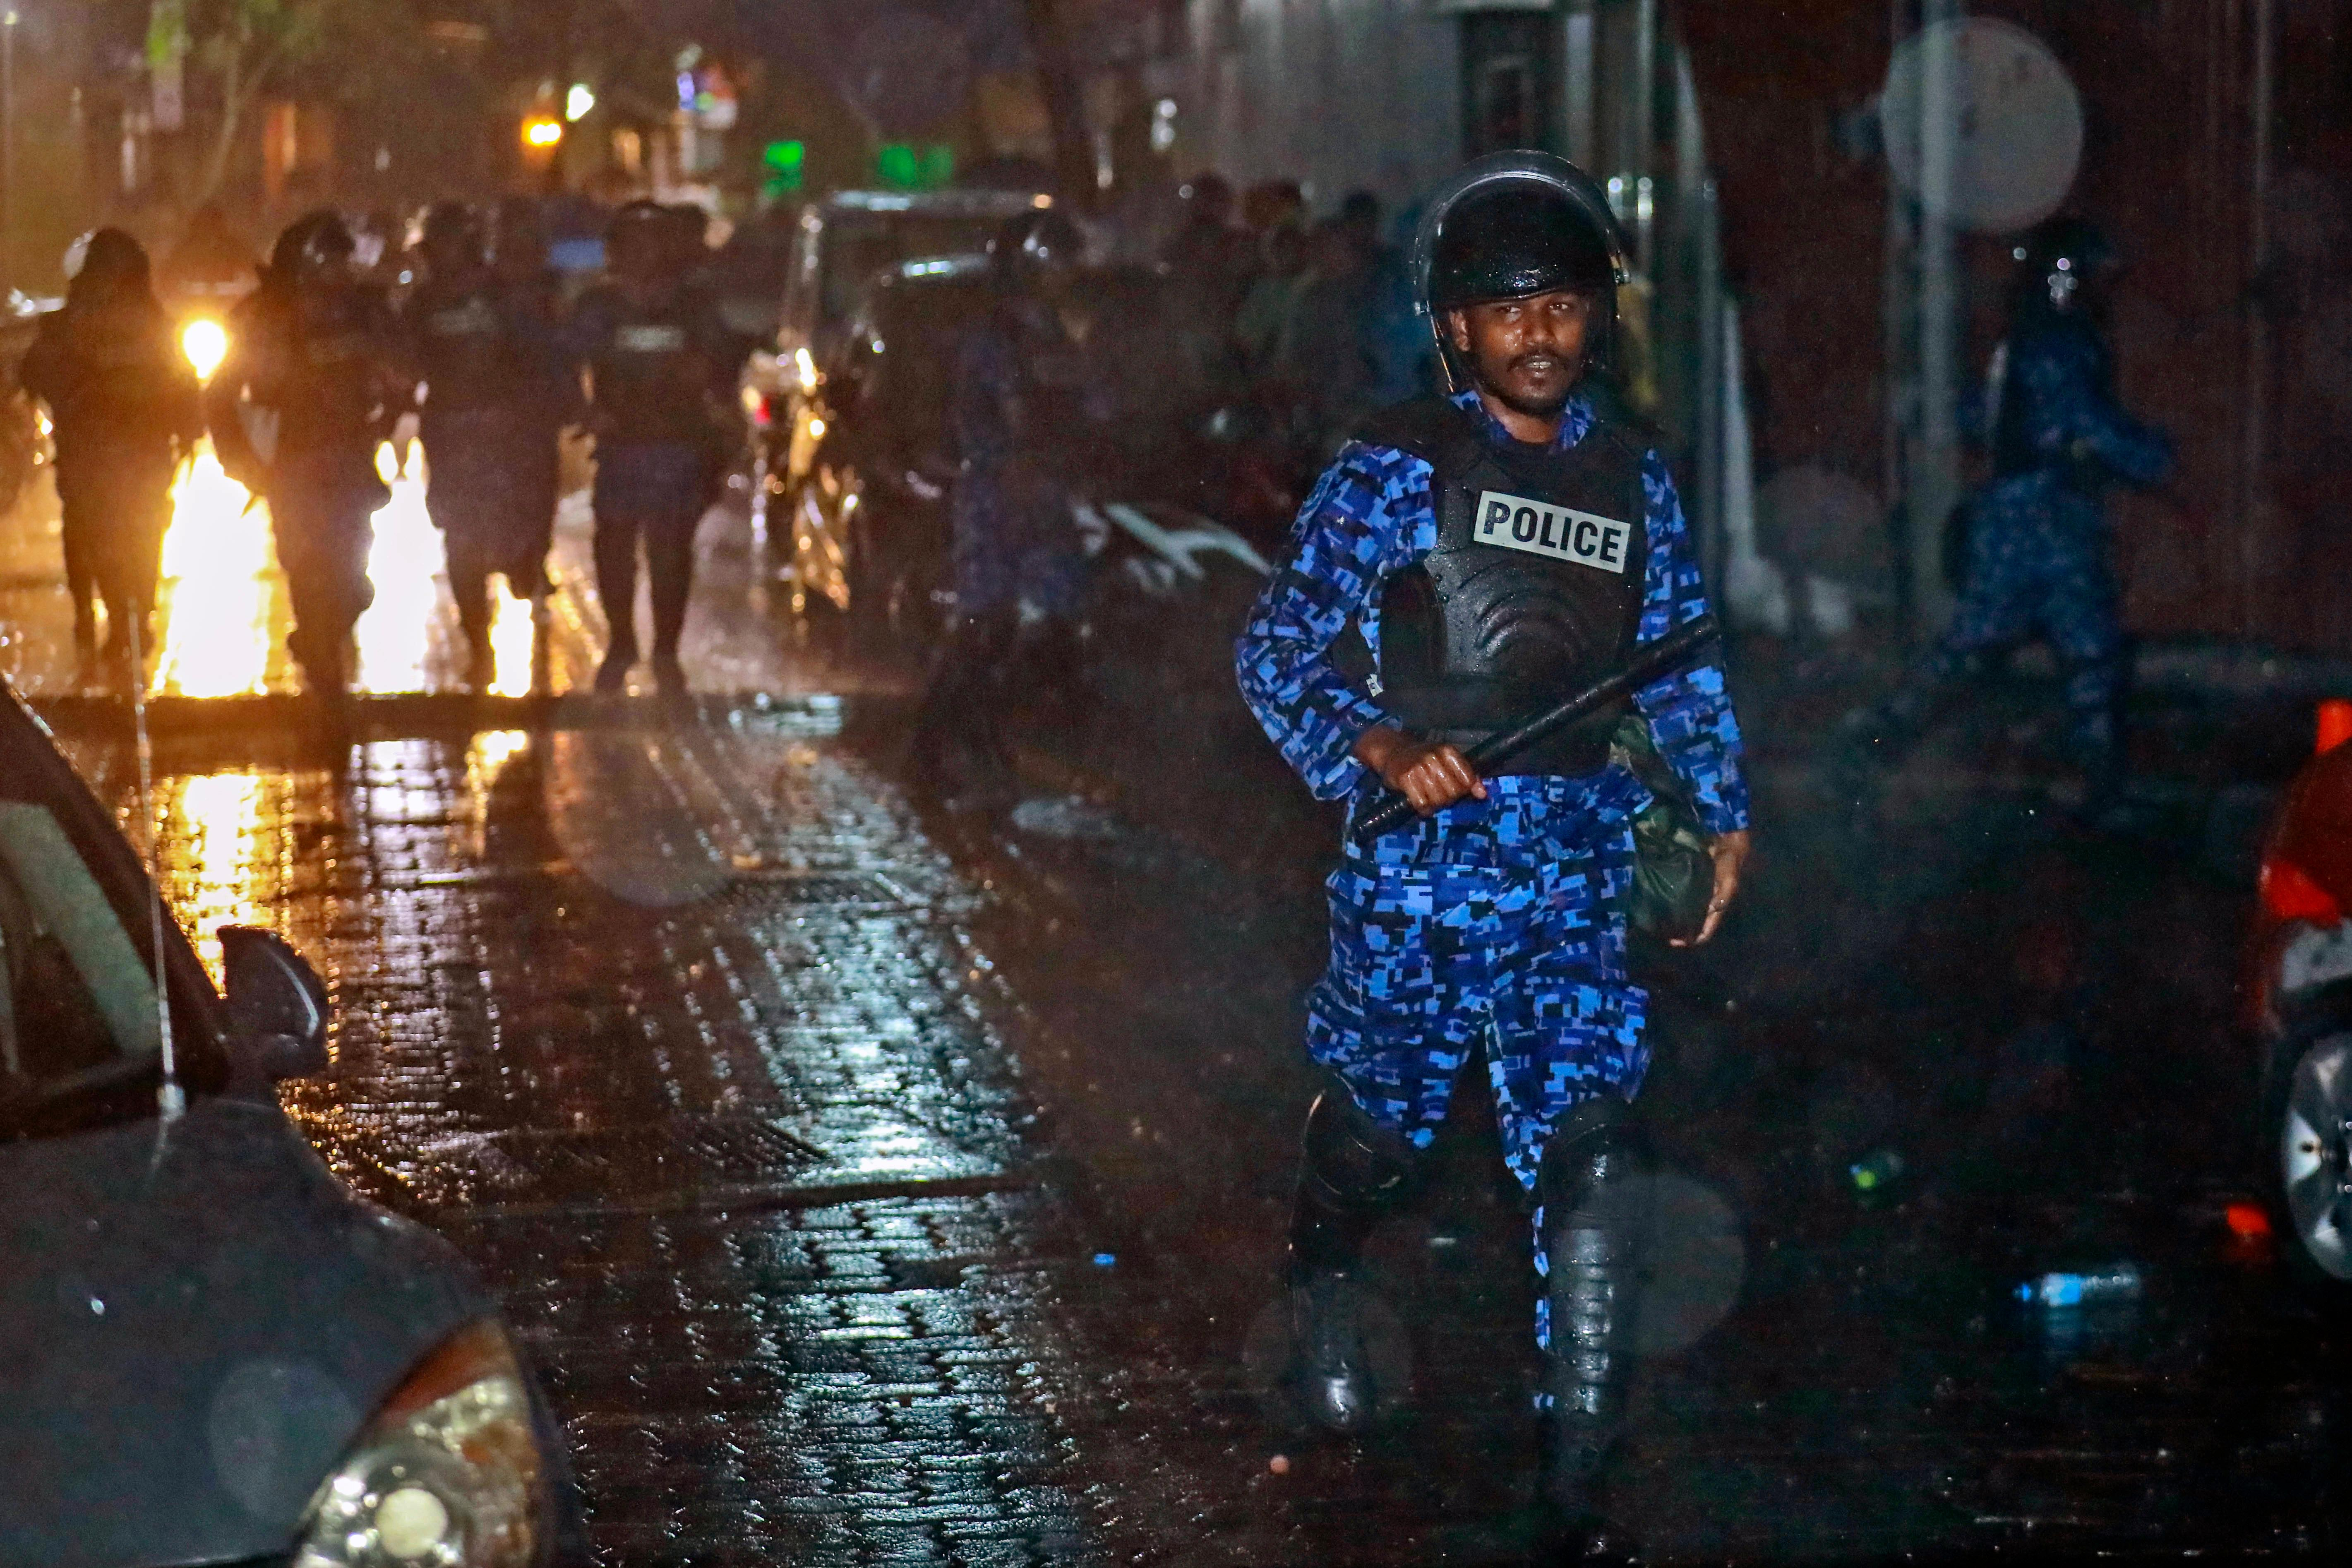 A Maldives policeman charges with baton towards protesters after the government declared a 15-day state of emergency in Male, Maldives, early Tuesday, Feb. 6, 2018. The Maldives government declared a 15-day state of emergency Monday as the political crisis deepened in the Indian Ocean nation amid an increasingly bitter standoff between the president and the Supreme Court. Hours after the emergency was declared, soldiers forced their way into the Supreme Court building, where the judges were believed to be taking shelter, said Ahmed Maloof, an opposition member of Parliament. (AP Photo/Mohamed Sharuhaan)